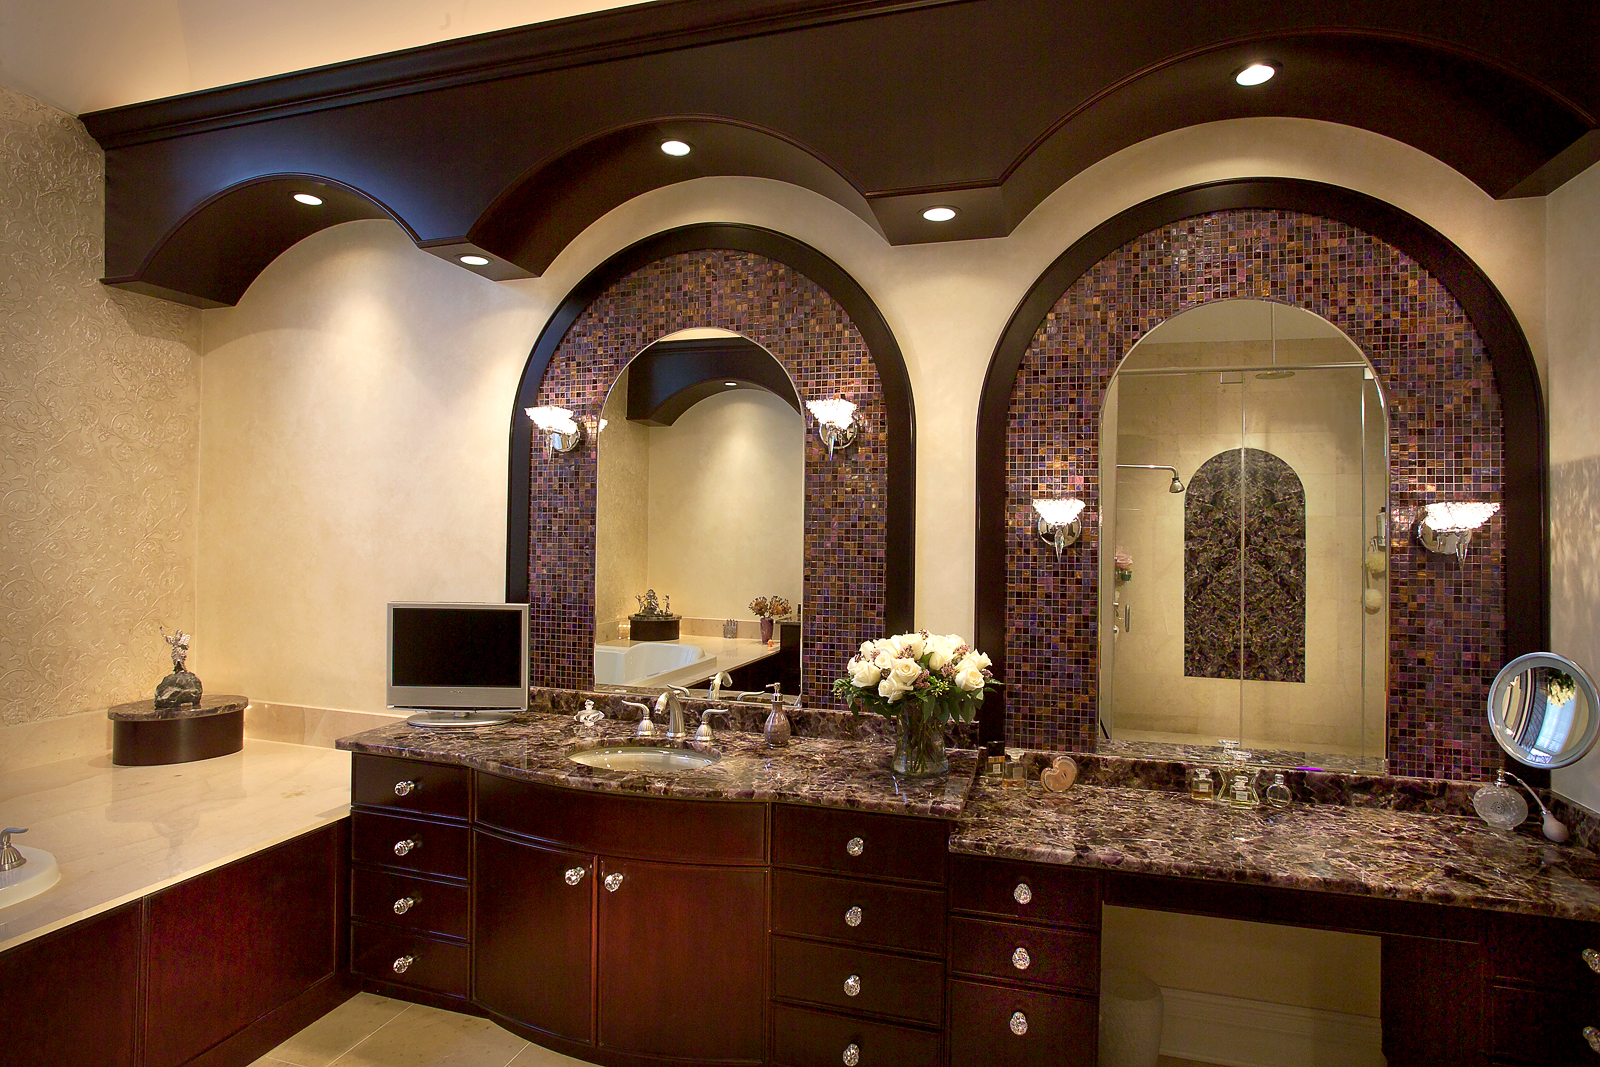 custom cabinetry, glass mosaics, precious stone